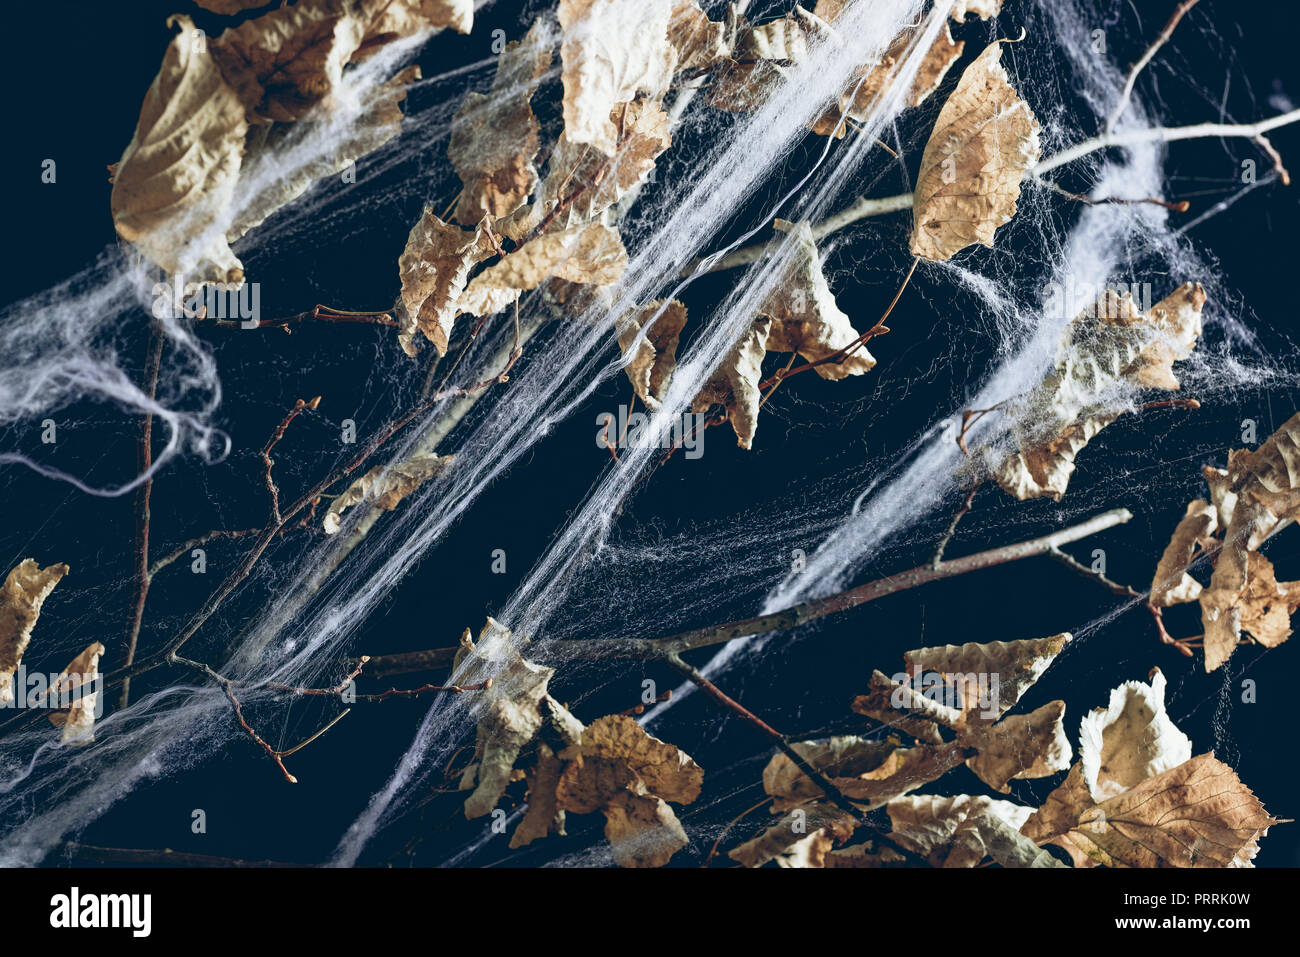 dry branch with leaves in spider web in darkness, halloween texture - Stock Image